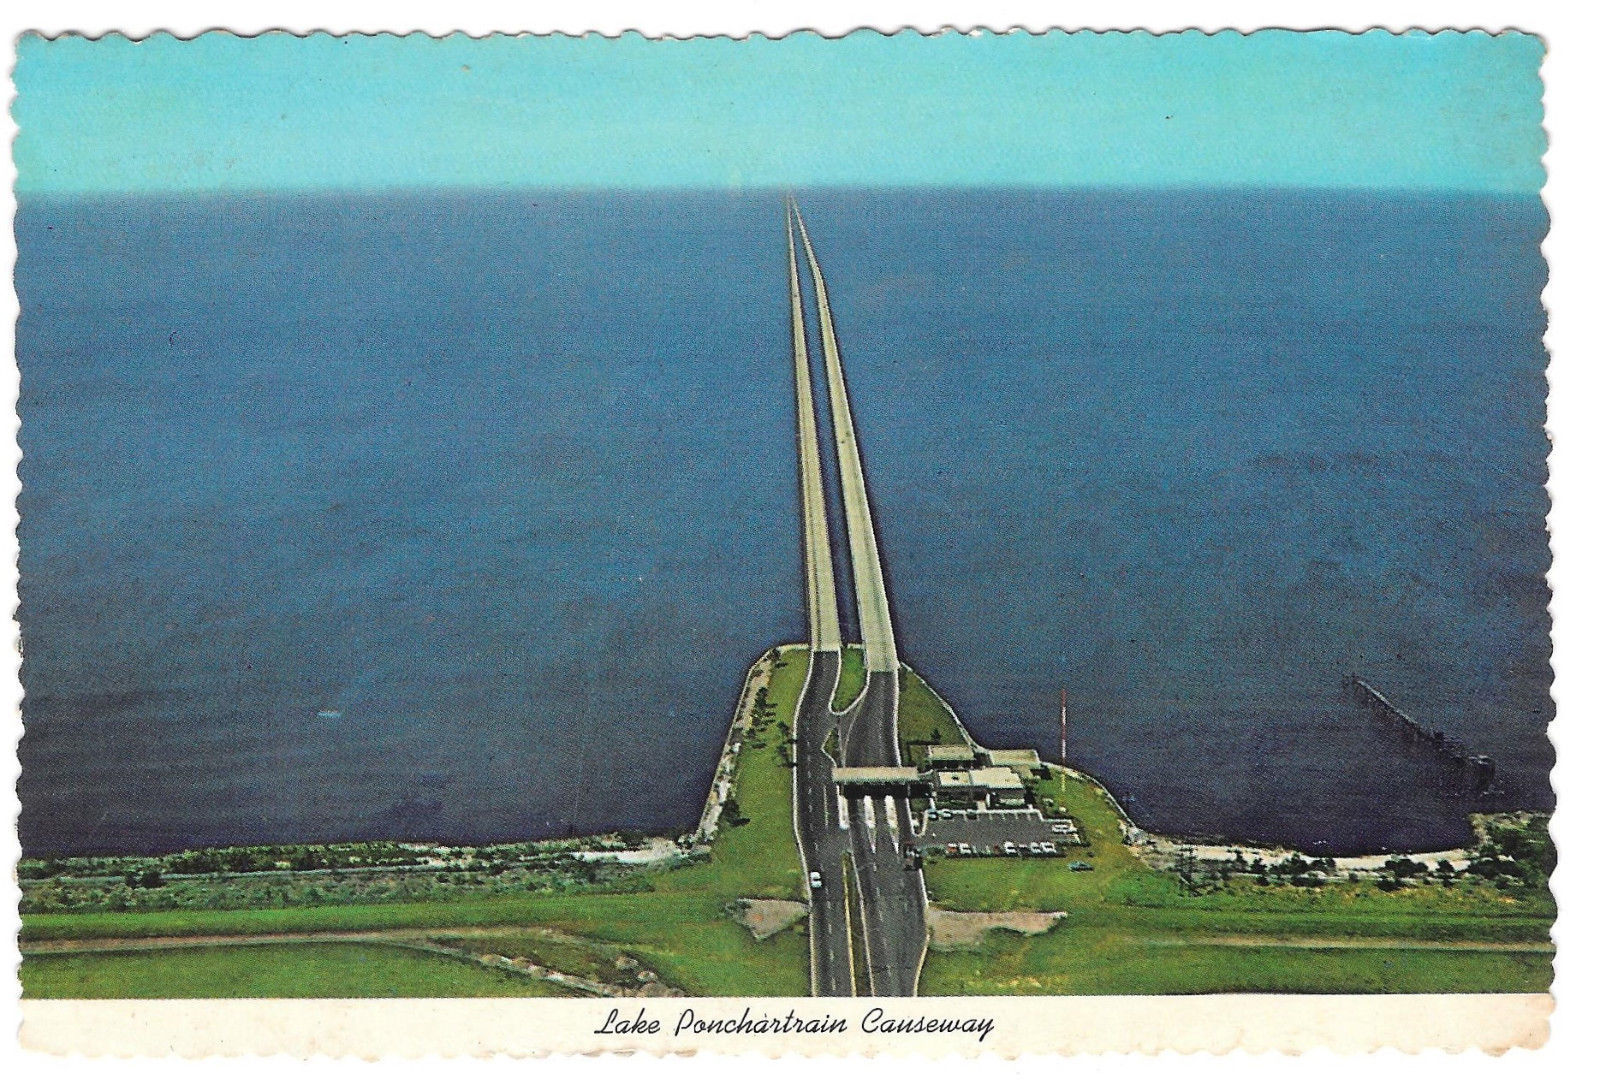 LA New Orleans Lake Ponchartrain Causeway Vtg 1977 Postcard 4X6 Pontchartrain